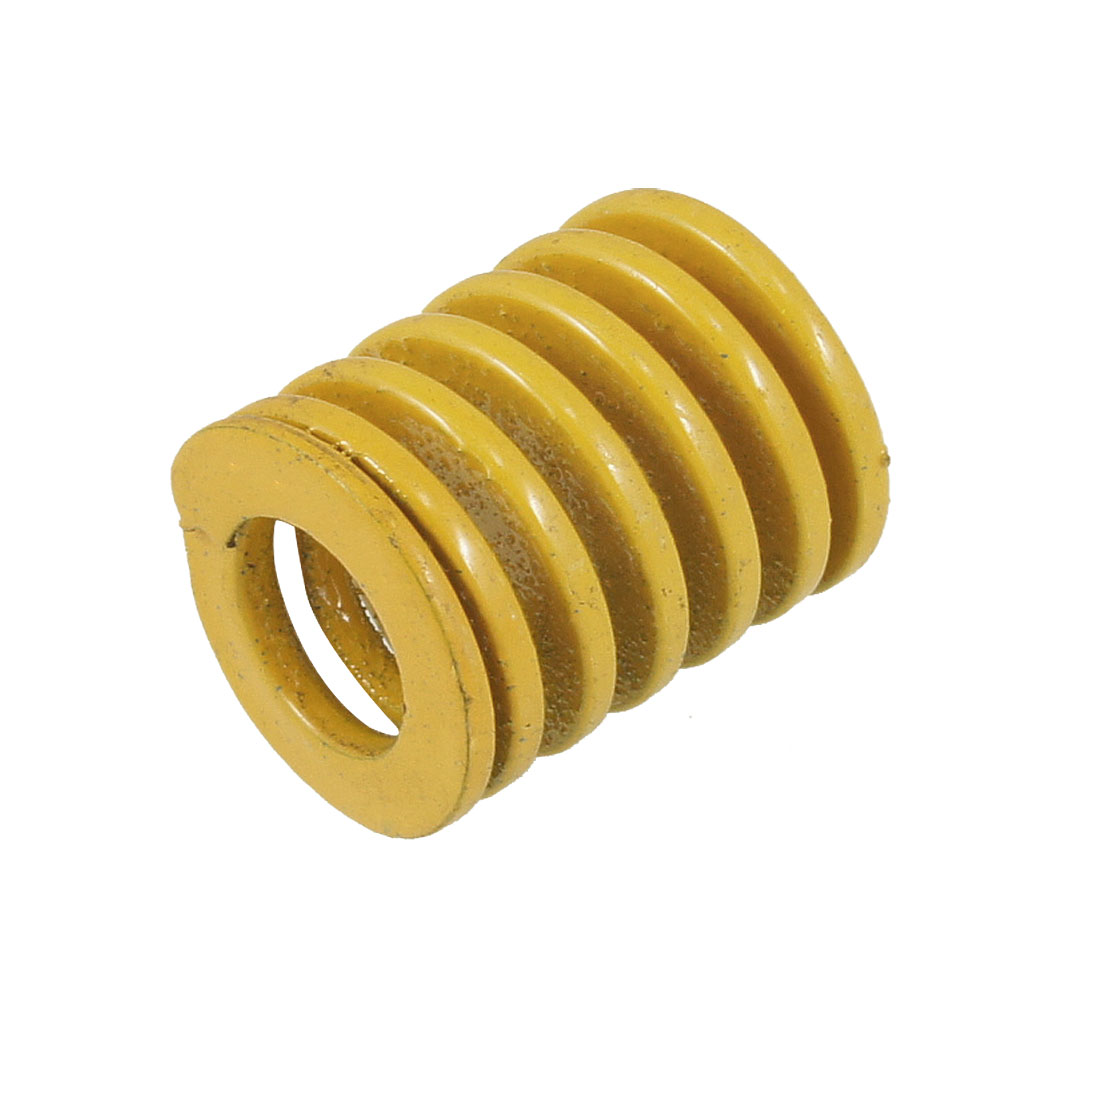 22mm x 12mm x 25mm Rectangular Section Mold Mould Die Spring